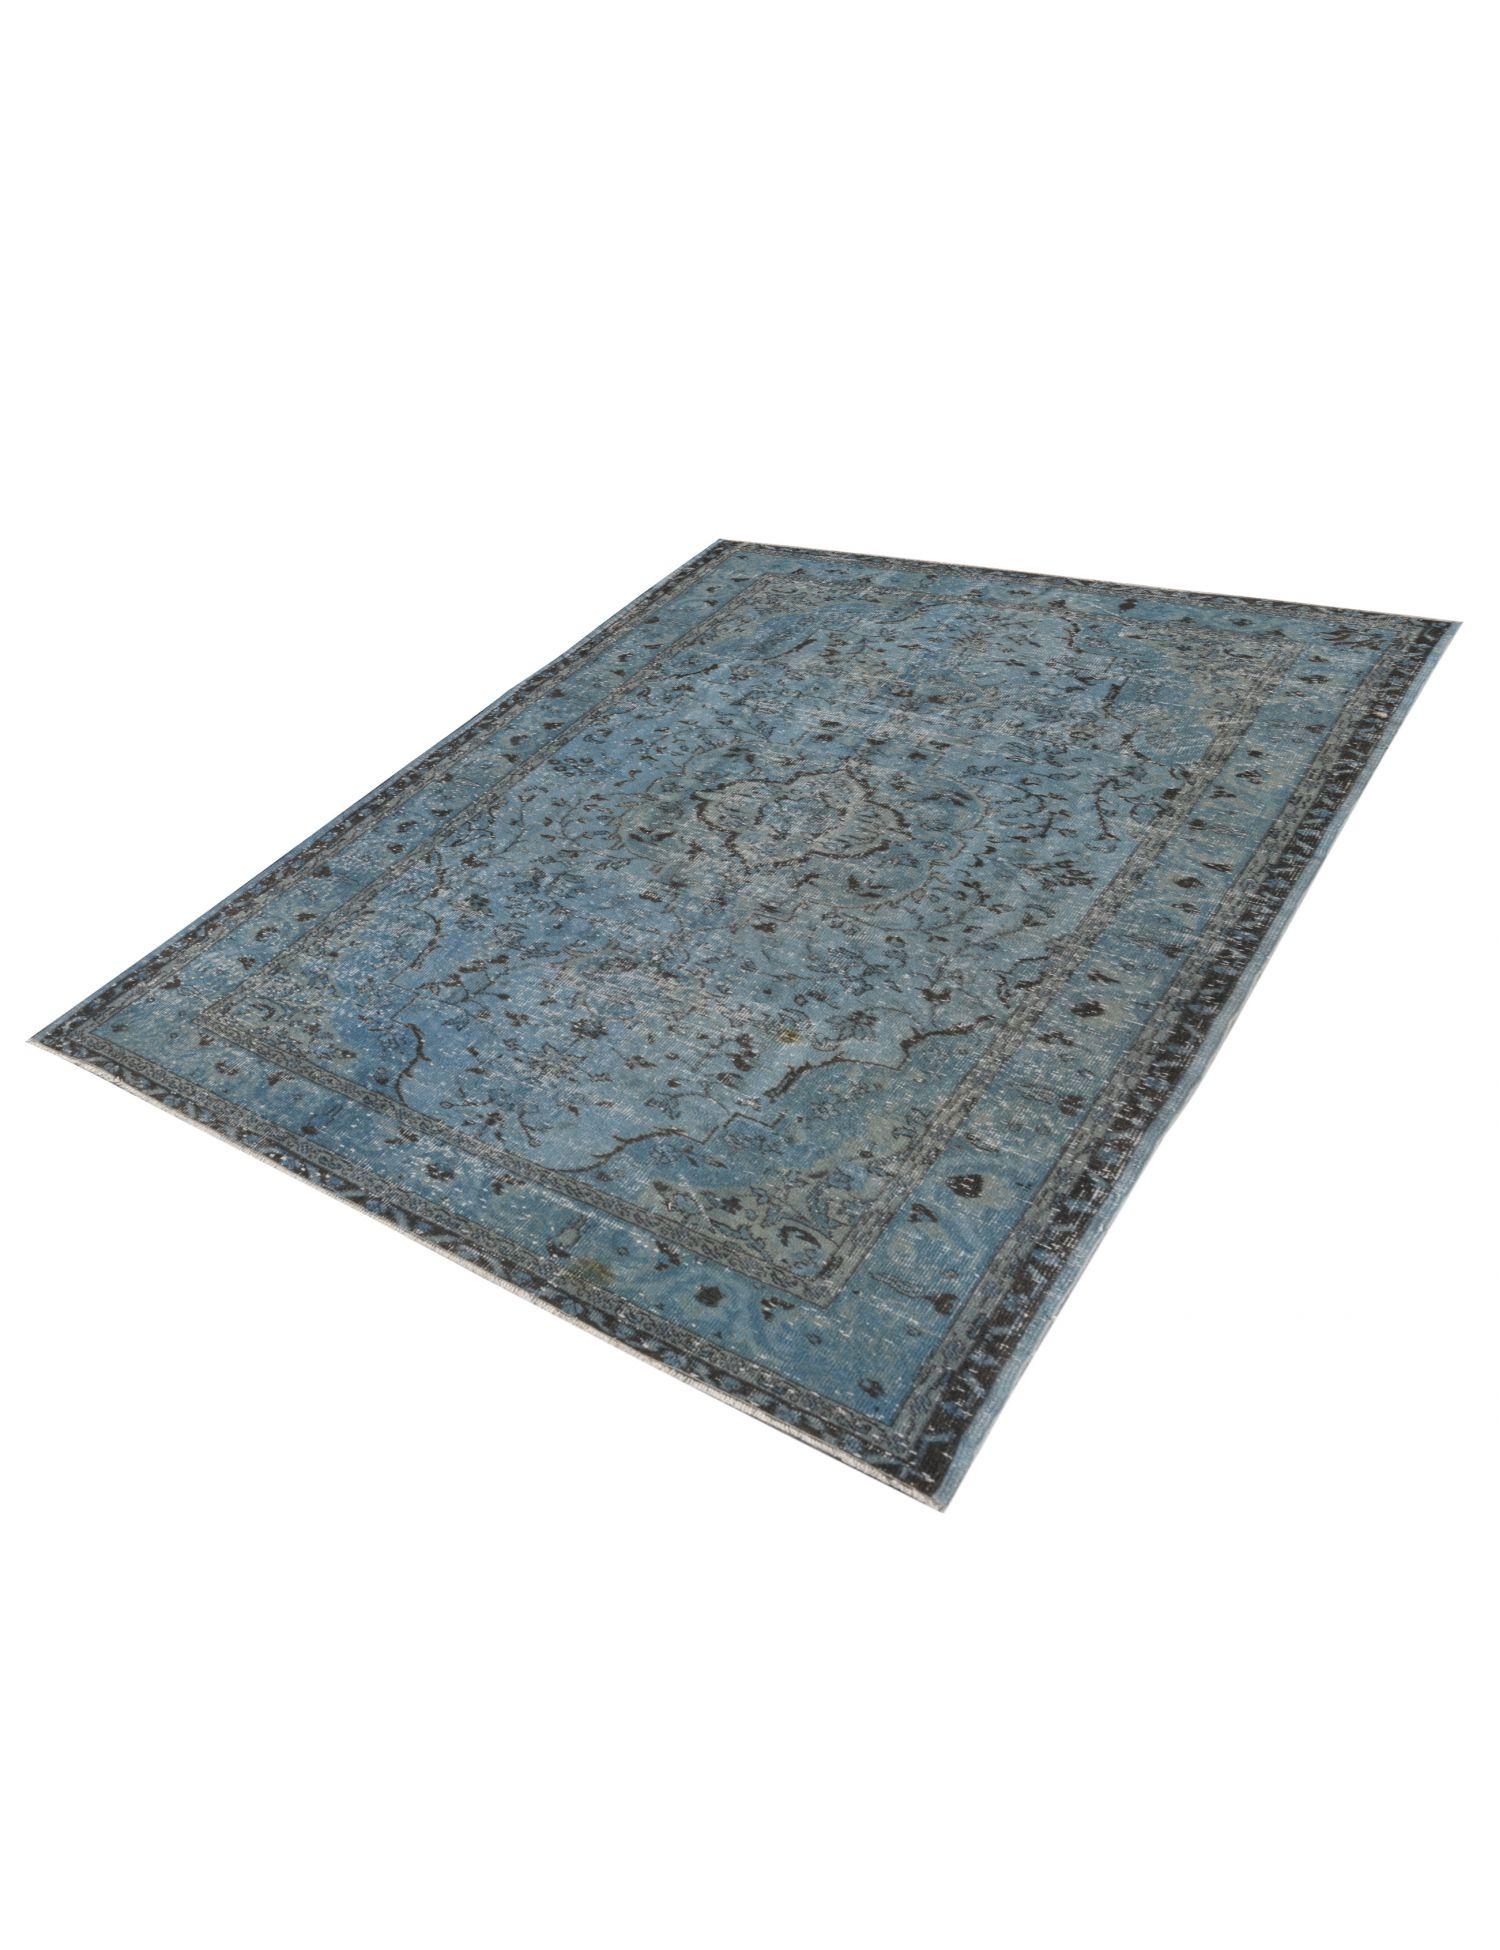 Vintage Carpet  blue <br/>236 x 155 cm